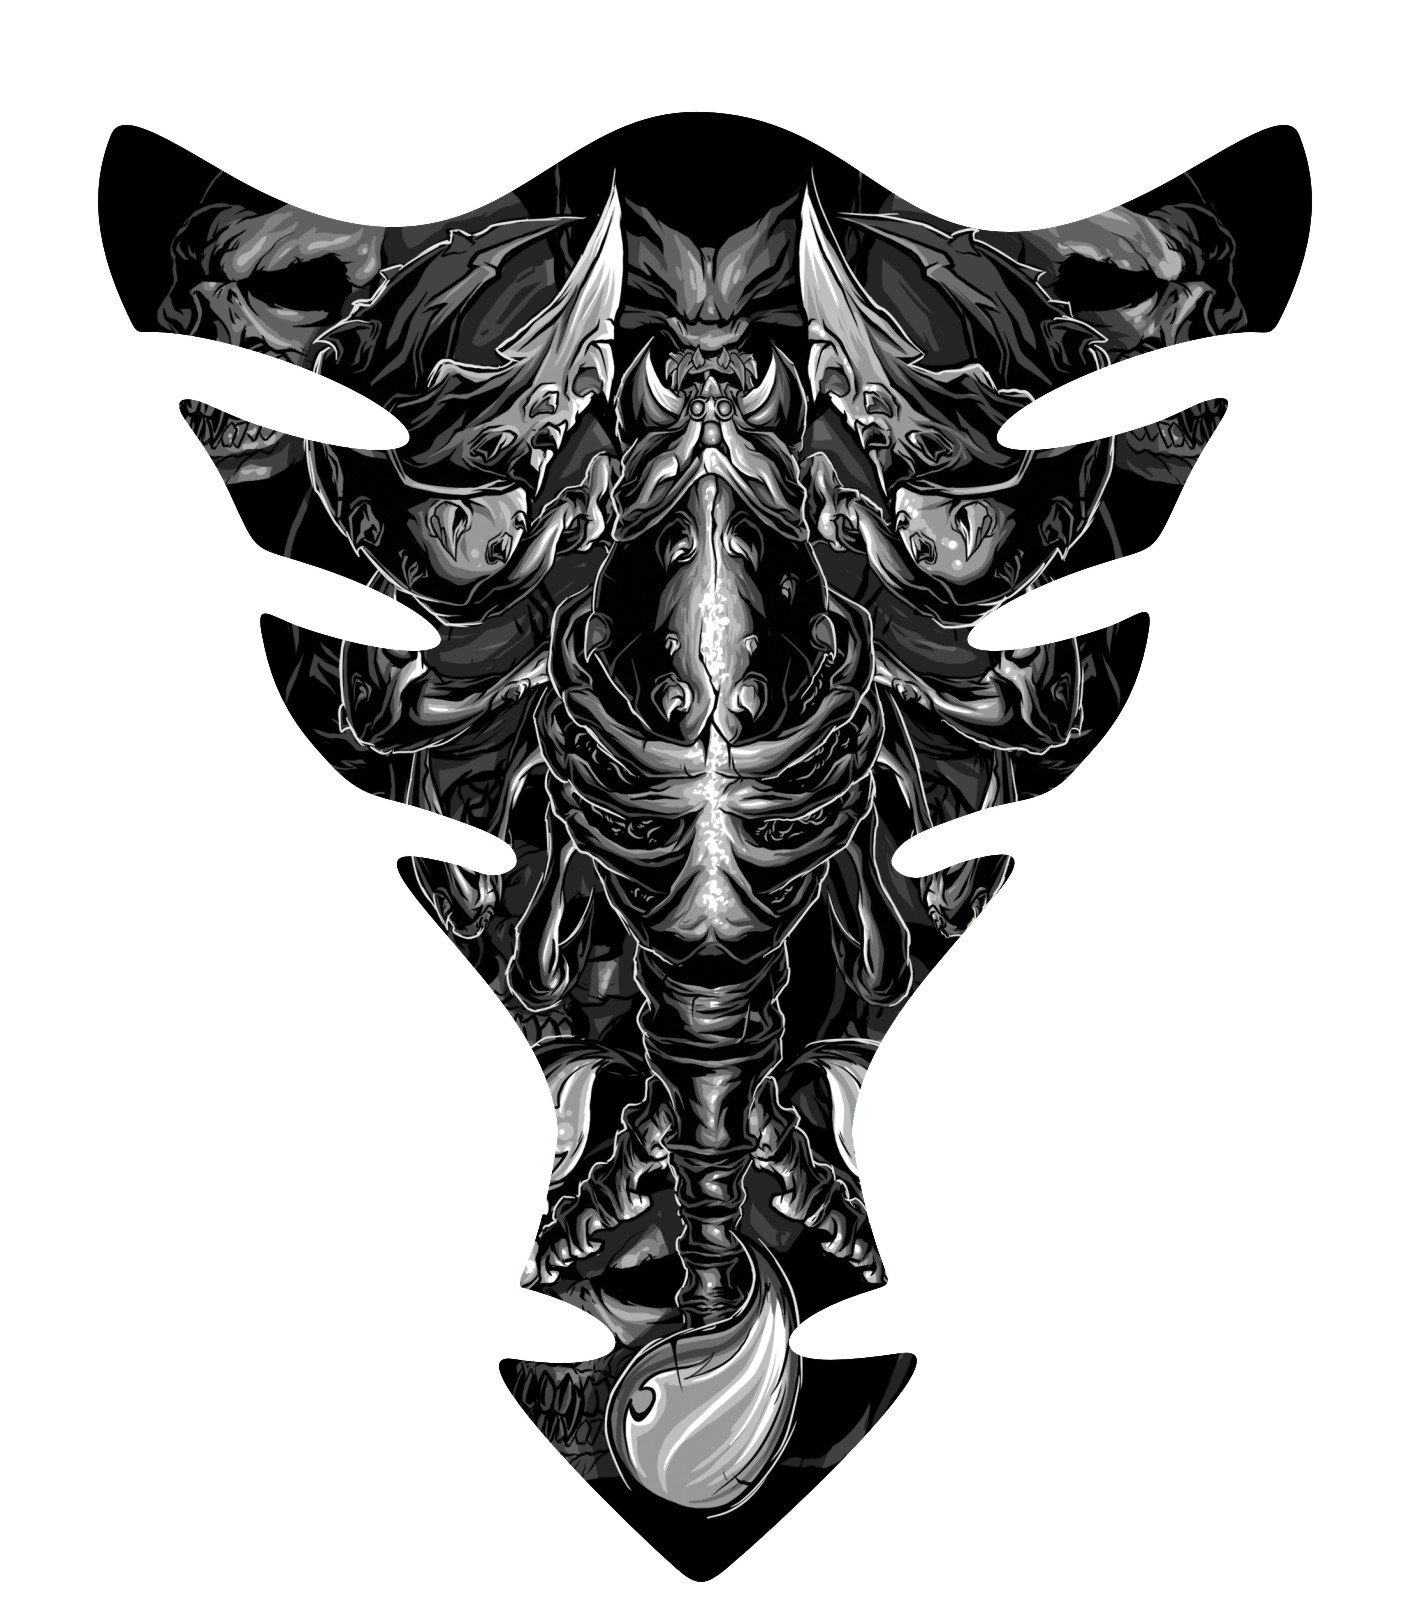 Gray Scorpion Skull Sportbike Motorcycle Gas Tank pad Protector Guard Sticker Decal